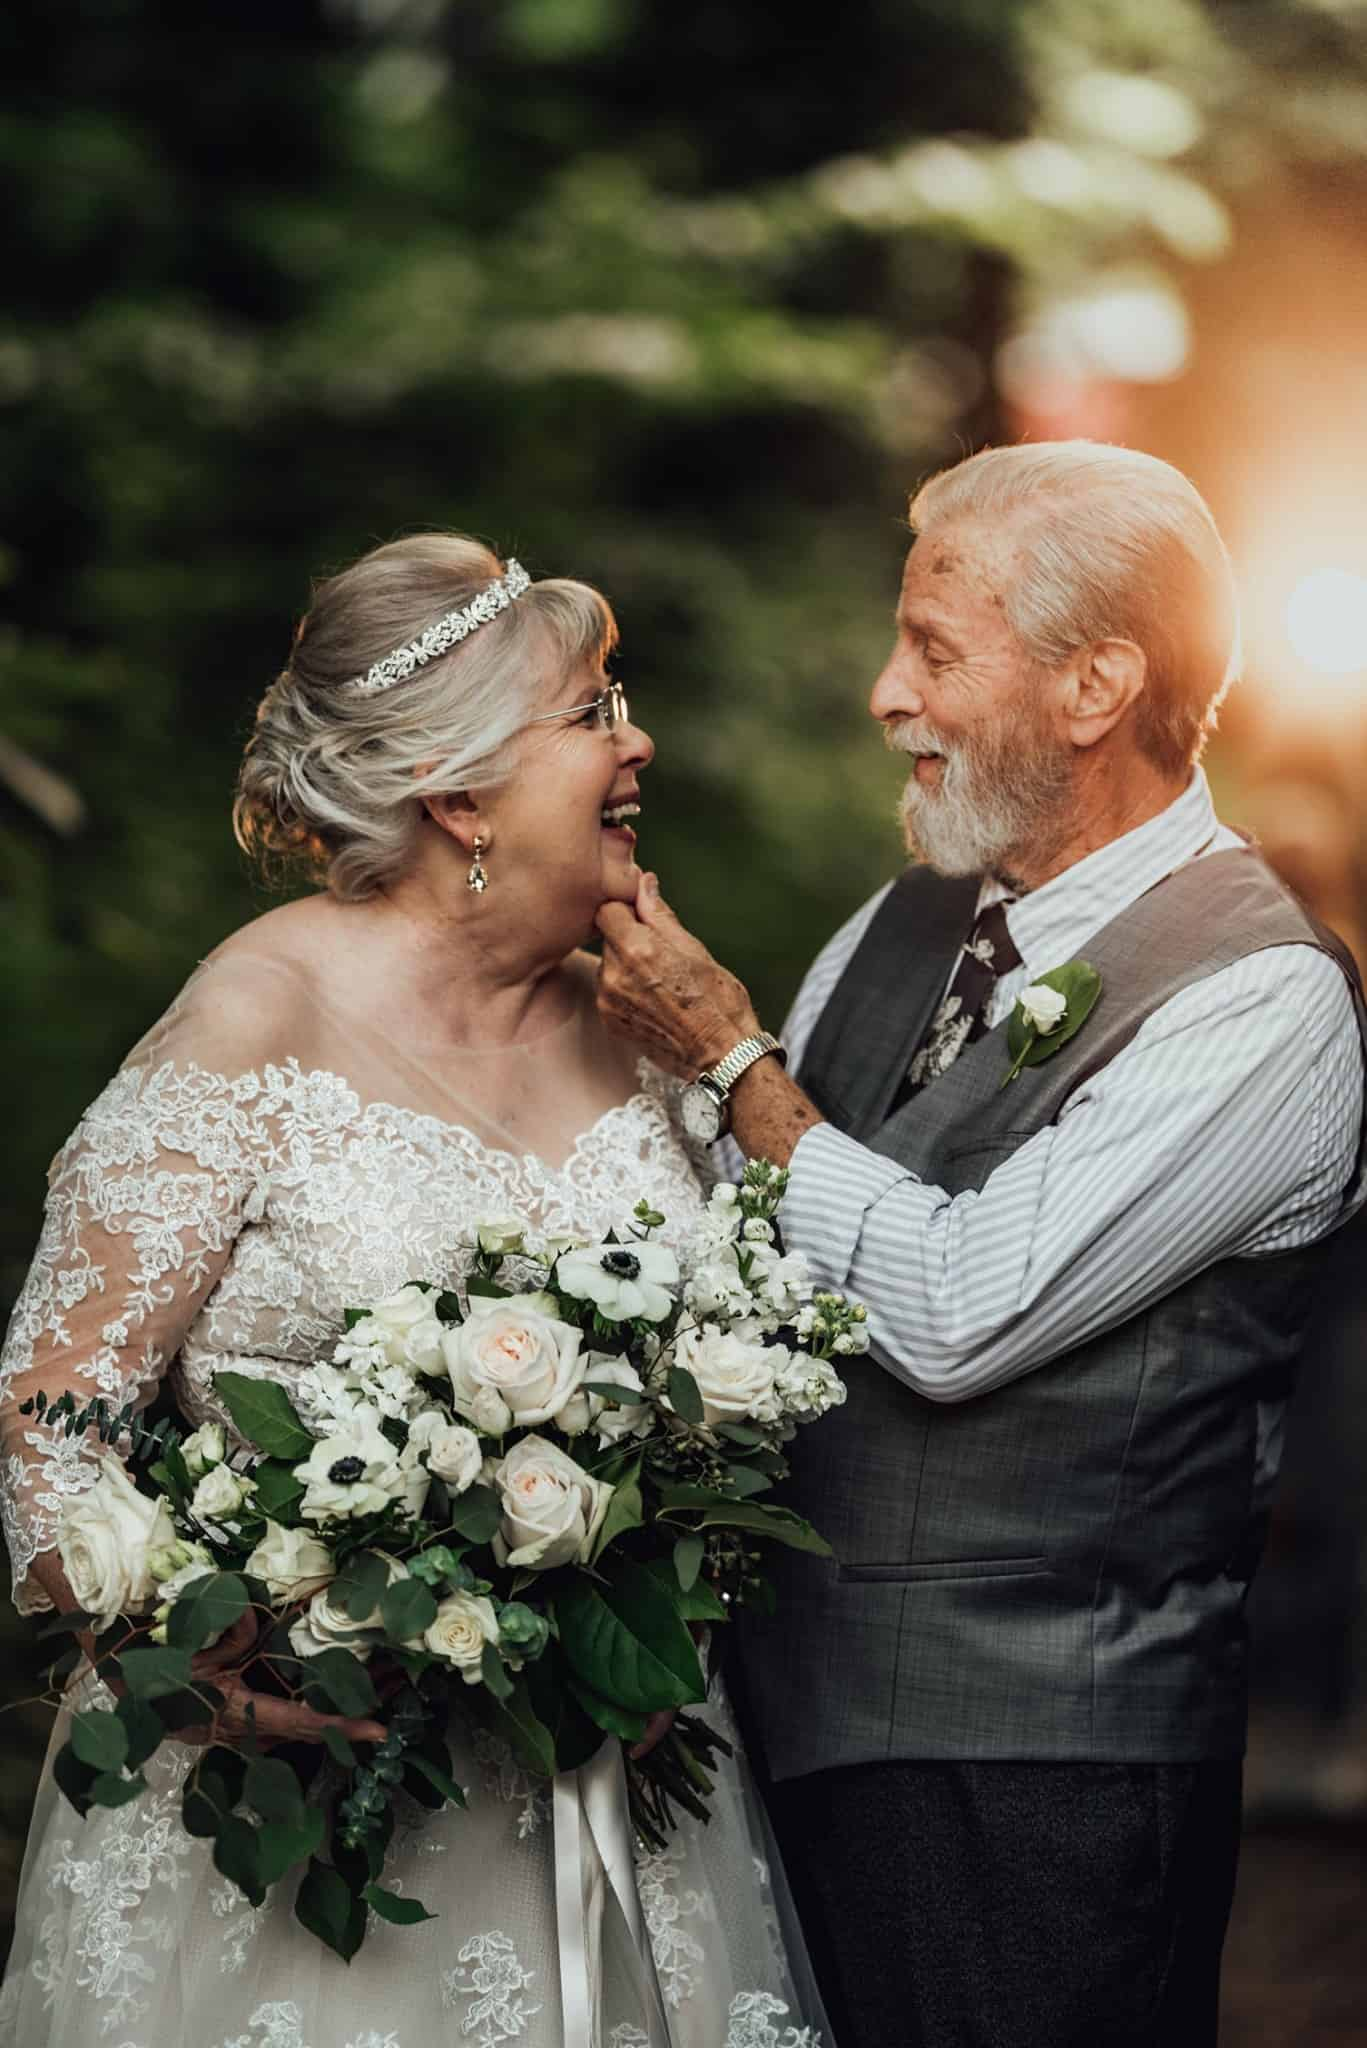 Elderly couple smiling at each other on their wedding day